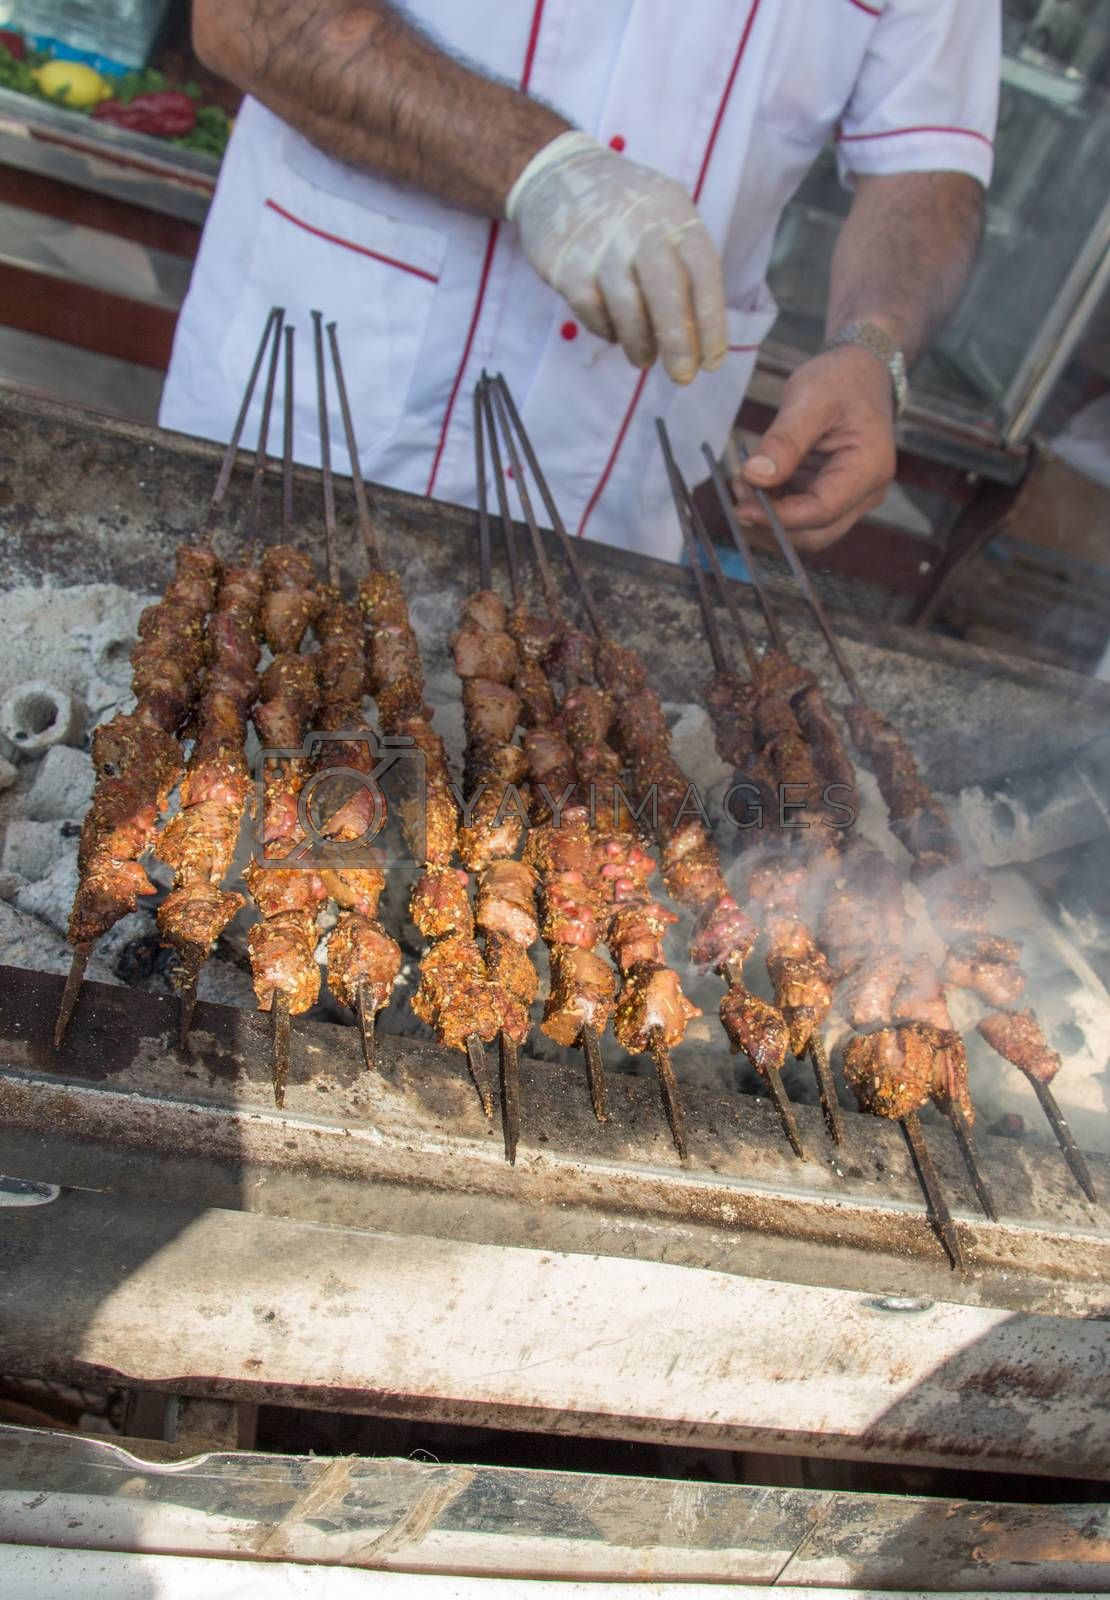 Turkish style meat shashlyk being grilled on grill